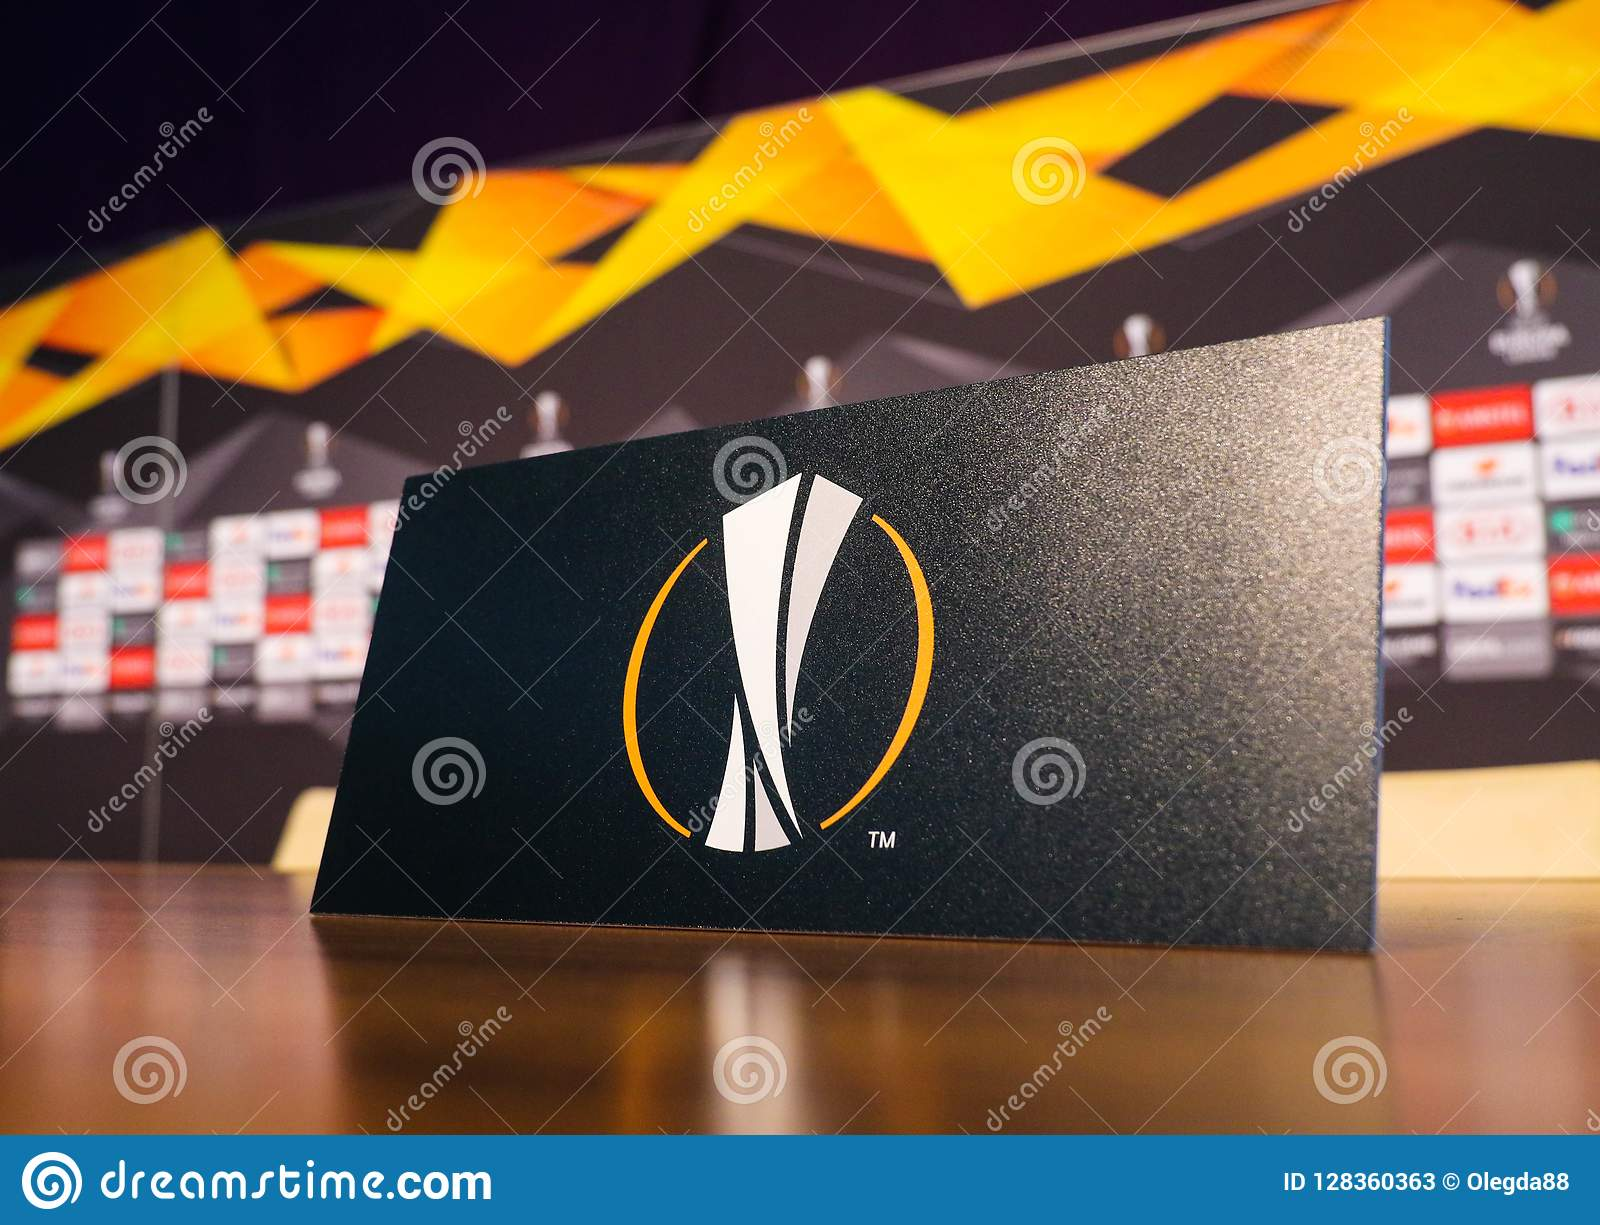 logo of the uefa europa league editorial stock photo image of conference match 128360363 https www dreamstime com logo uefa europa league poltava ukraine october logo uefa europa league plate pre match press image128360363